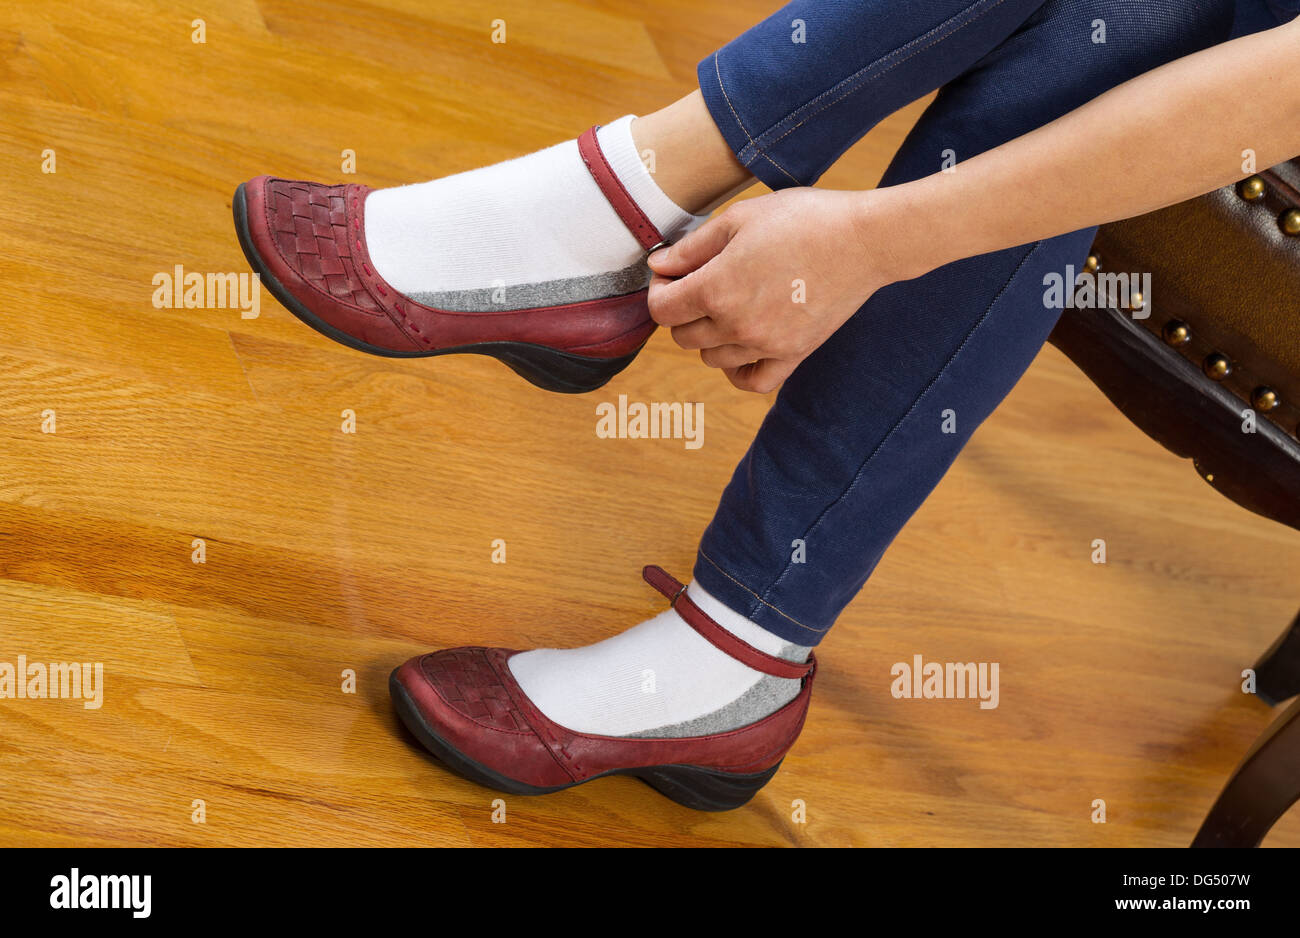 Horizontal photo of woman putting on causal shoes while sitting on leather padded footstool with red oak floors in background - Stock Image